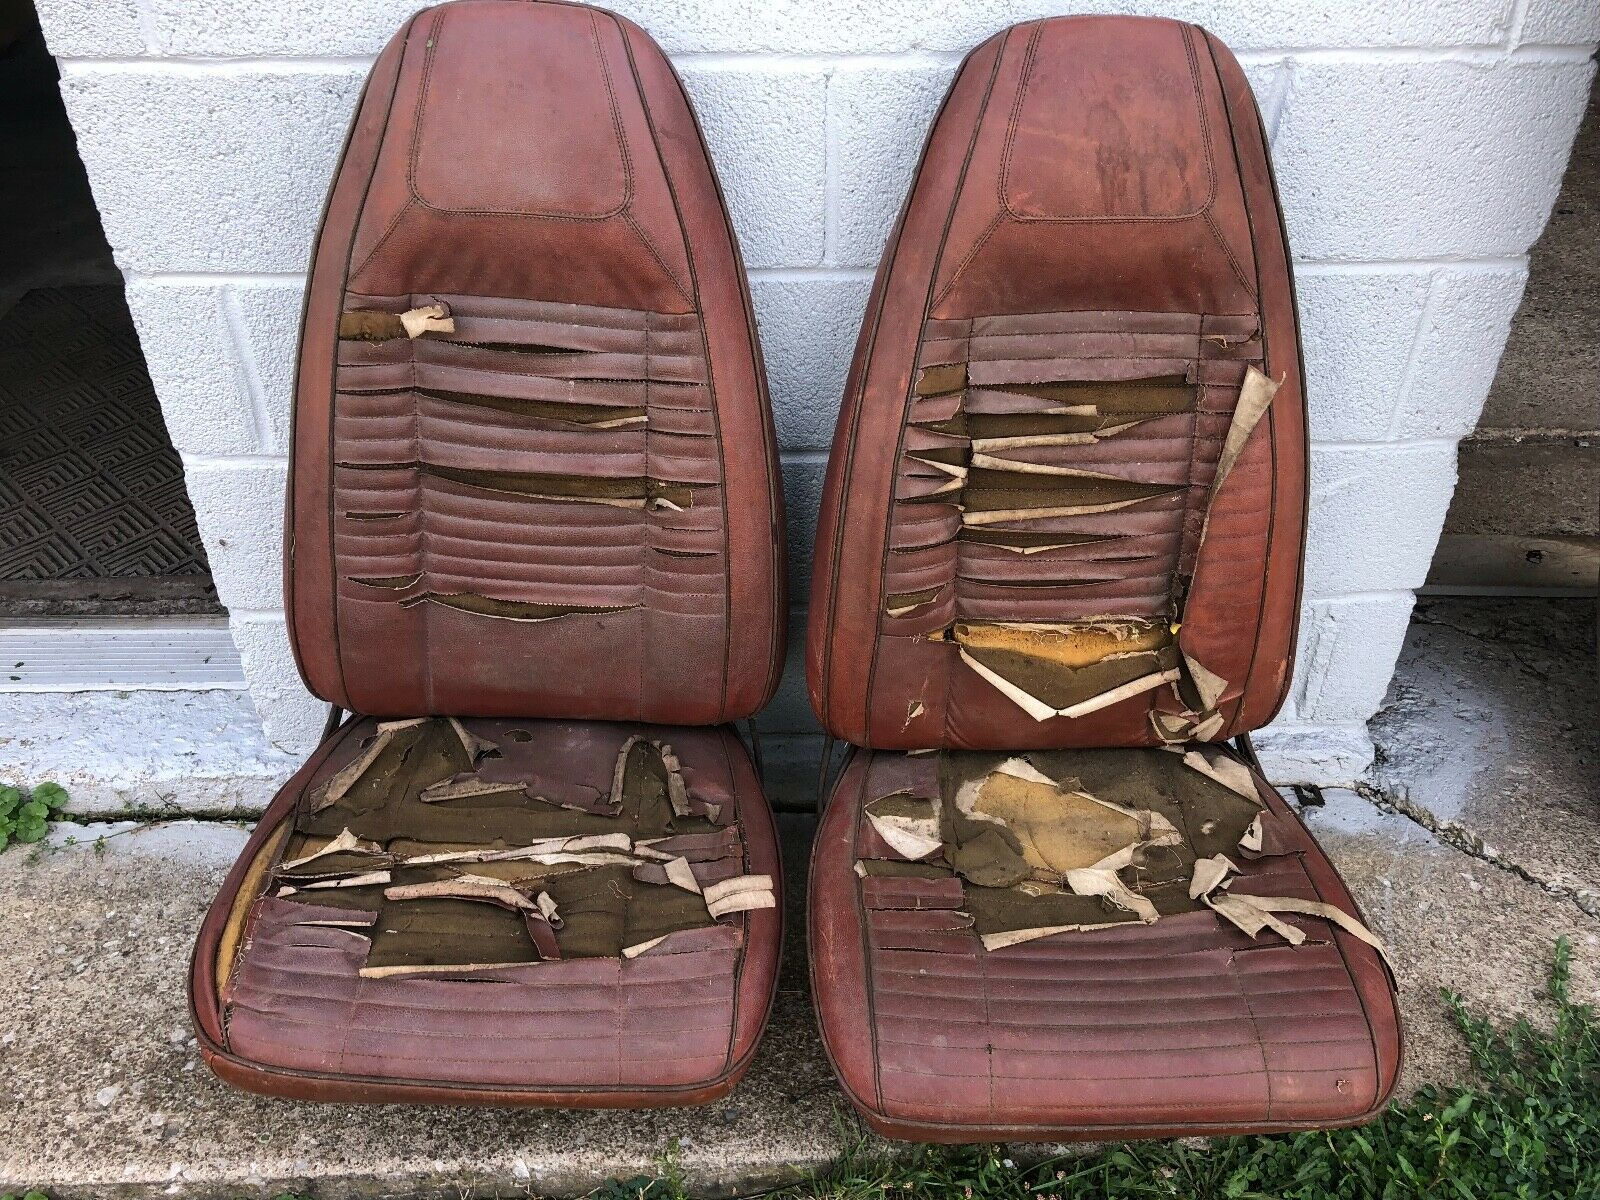 Used Plymouth Seats for Sale